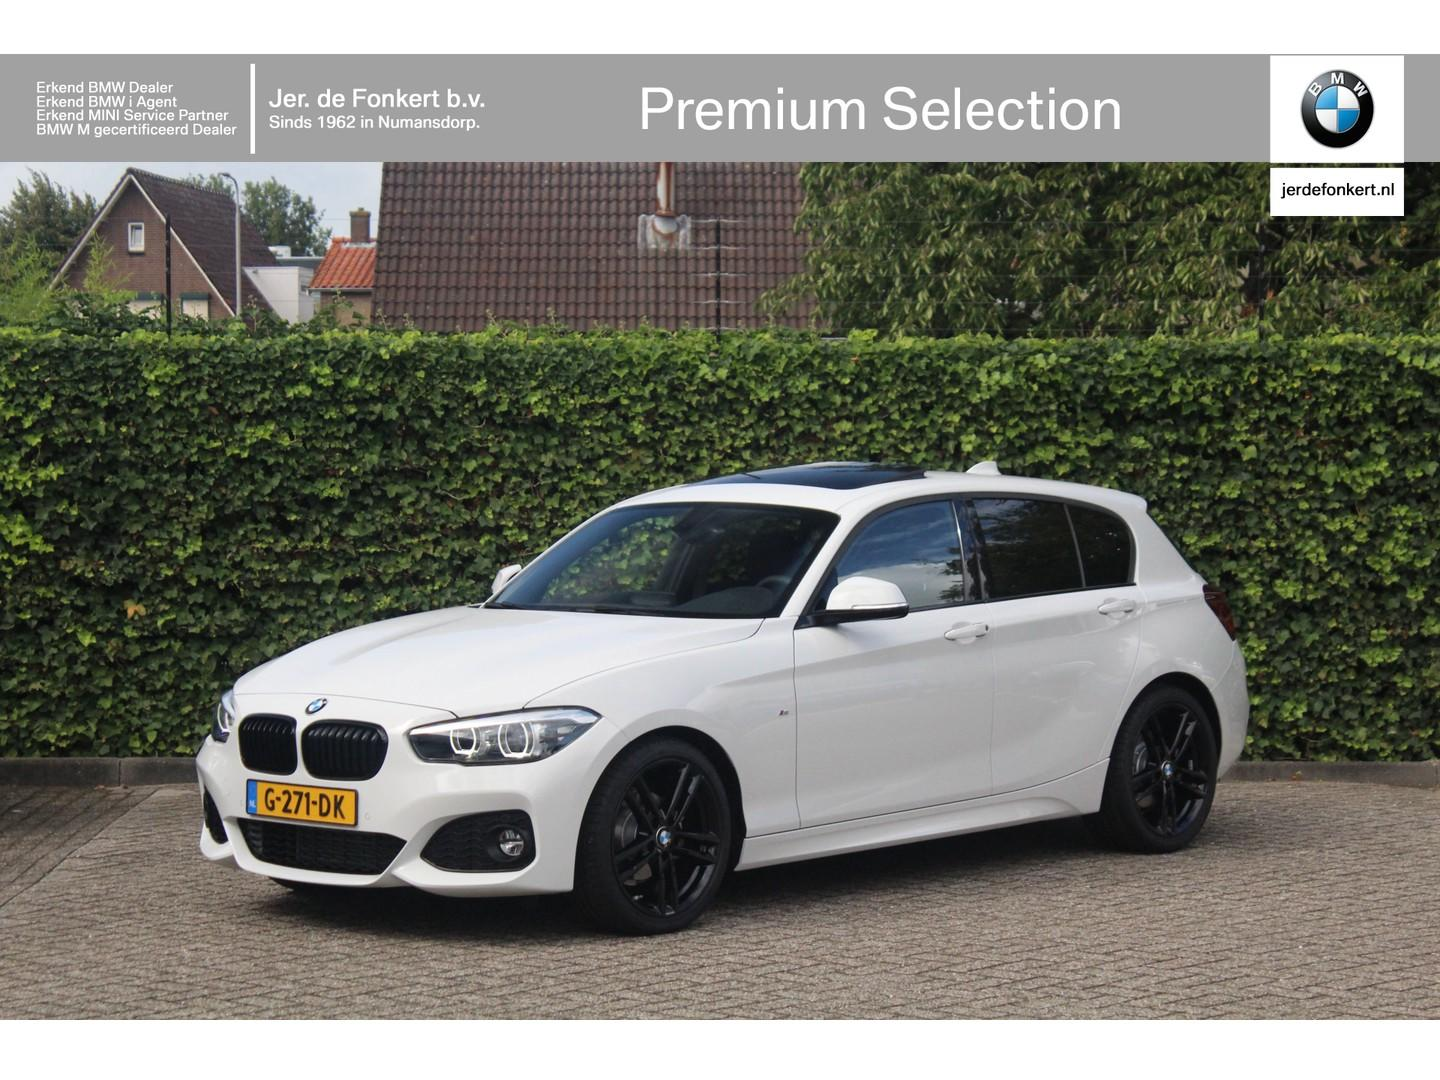 Bmw 1 Serie 118i Edition M Sport Shadow Bij Jer De Fonkert Bv Bmw Dealer